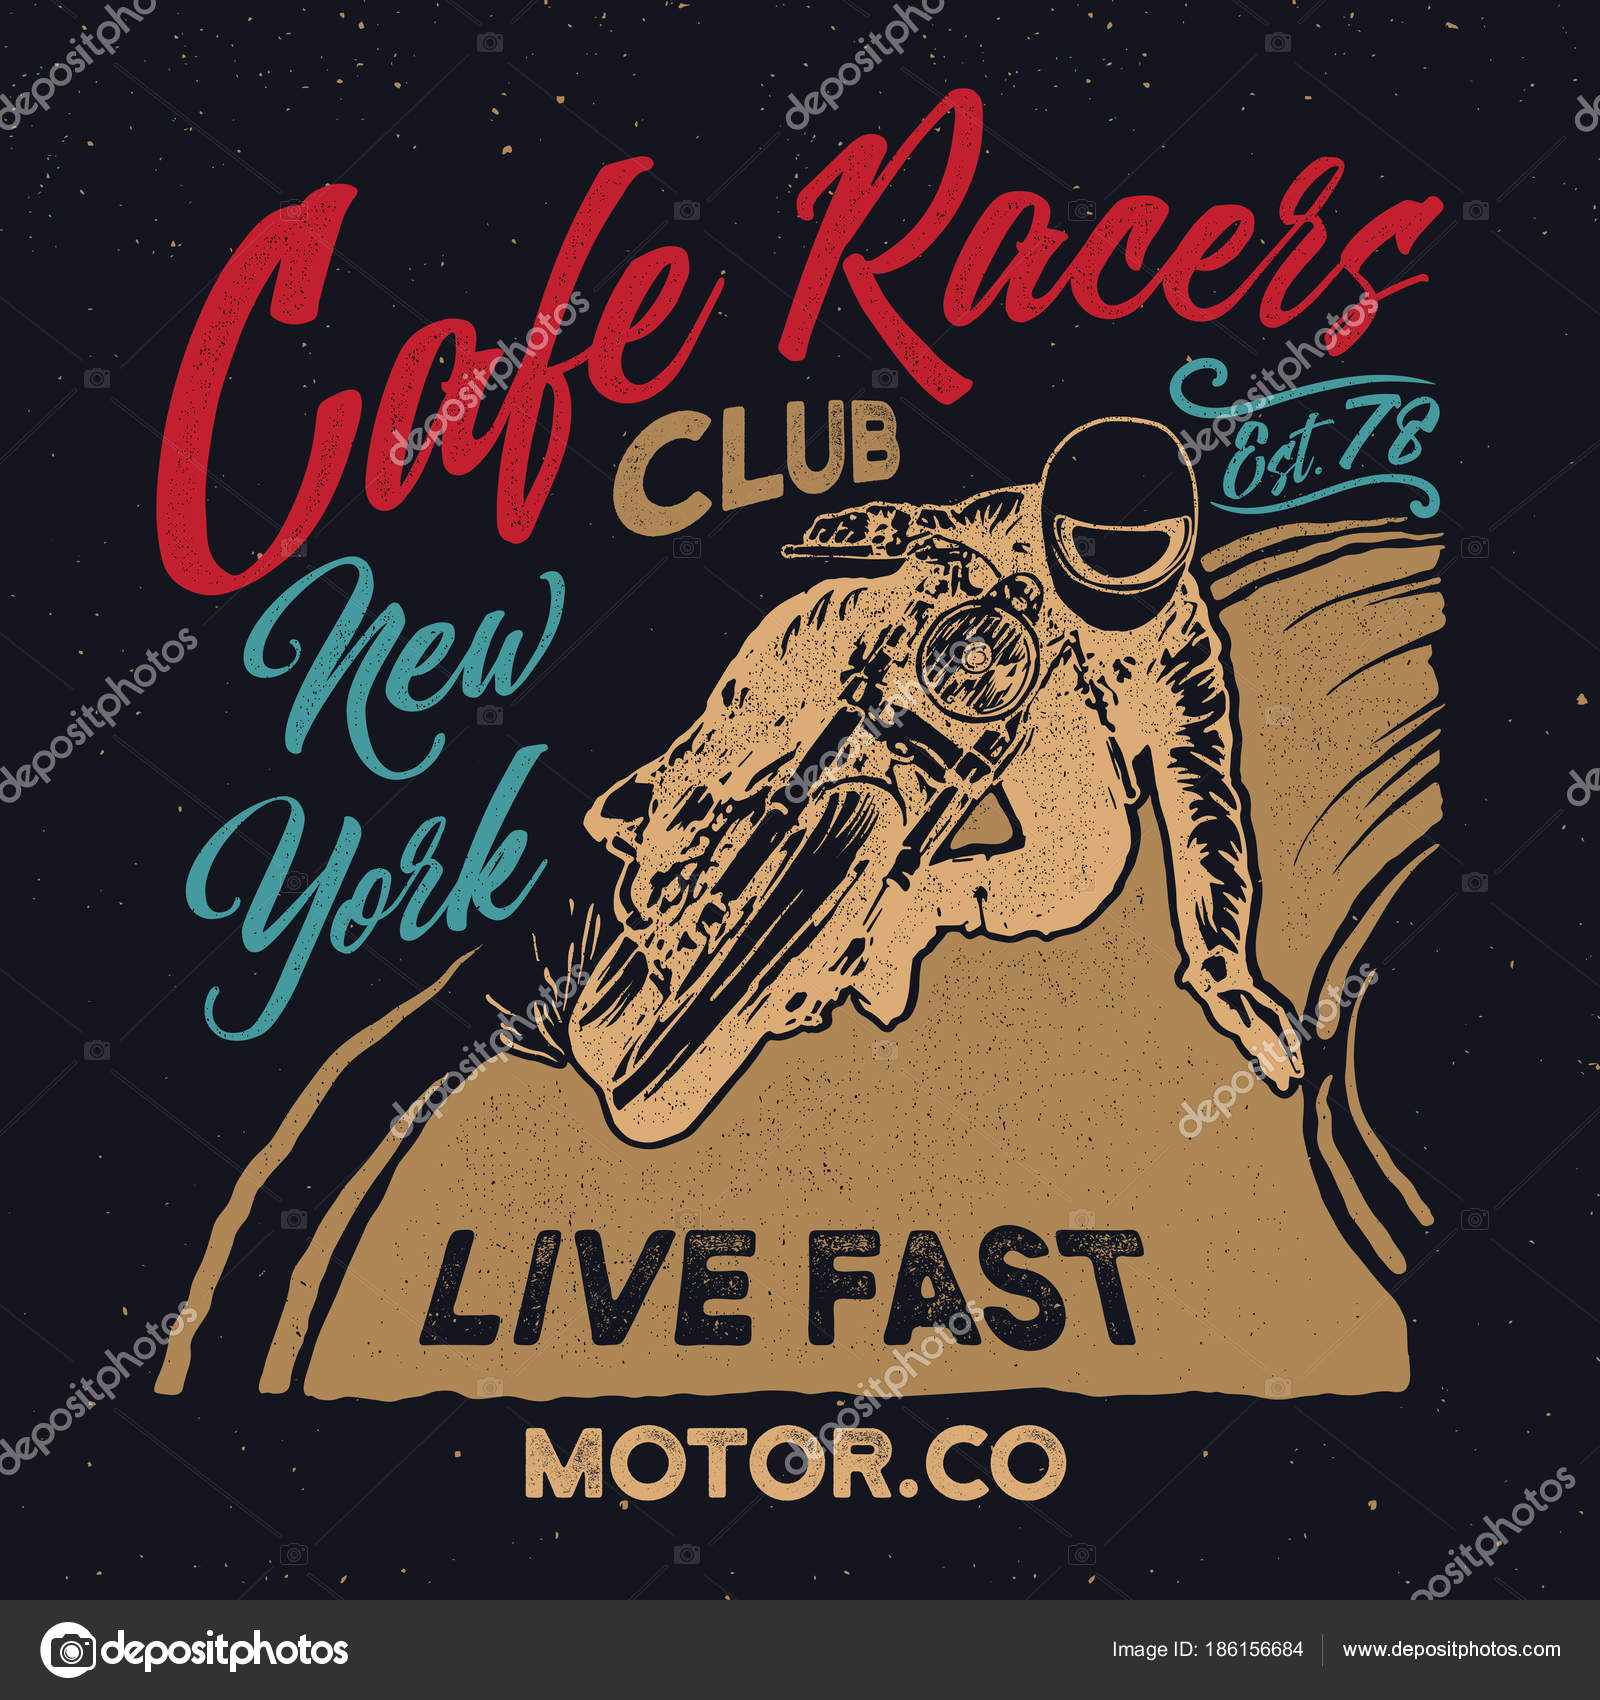 New York Cafe Racers Club MotorcycleCafe Racer Vintage PosterTypography Design For T Shirt Print Vector By KlausKunstler